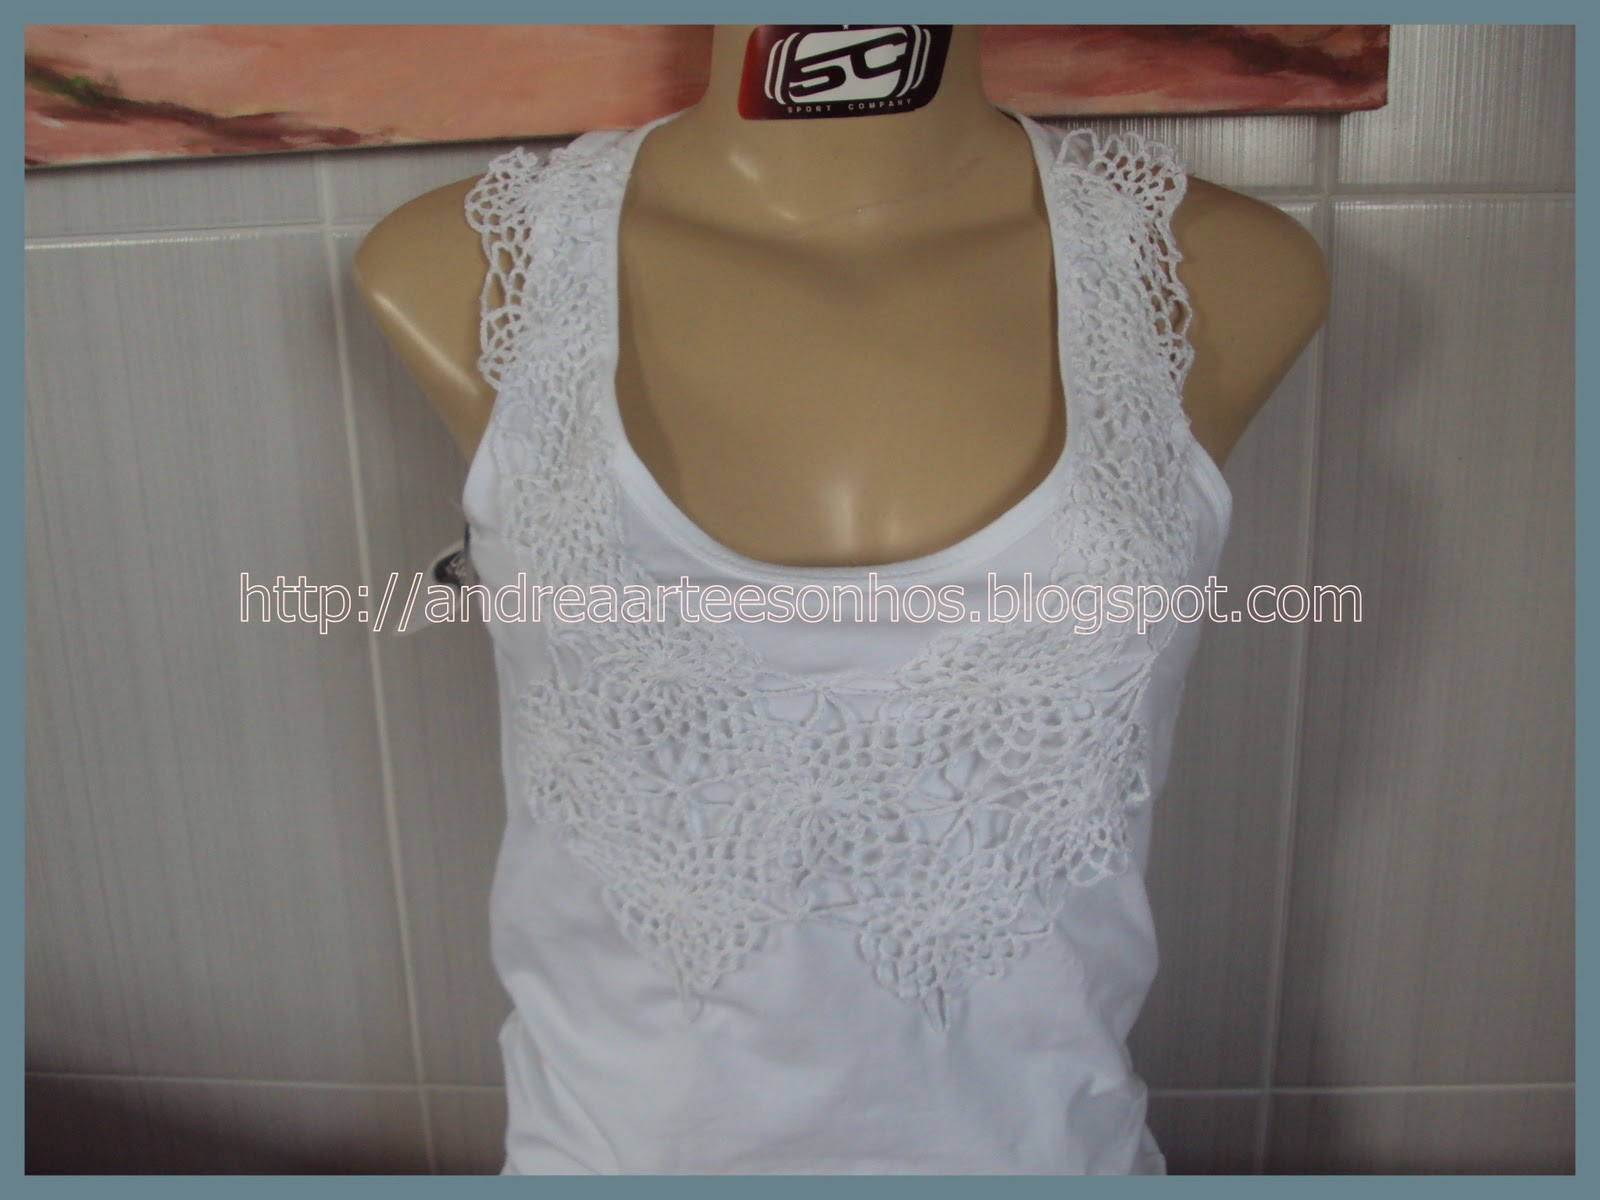 CAMISETA CUSTOMIZADA COM CROCHE